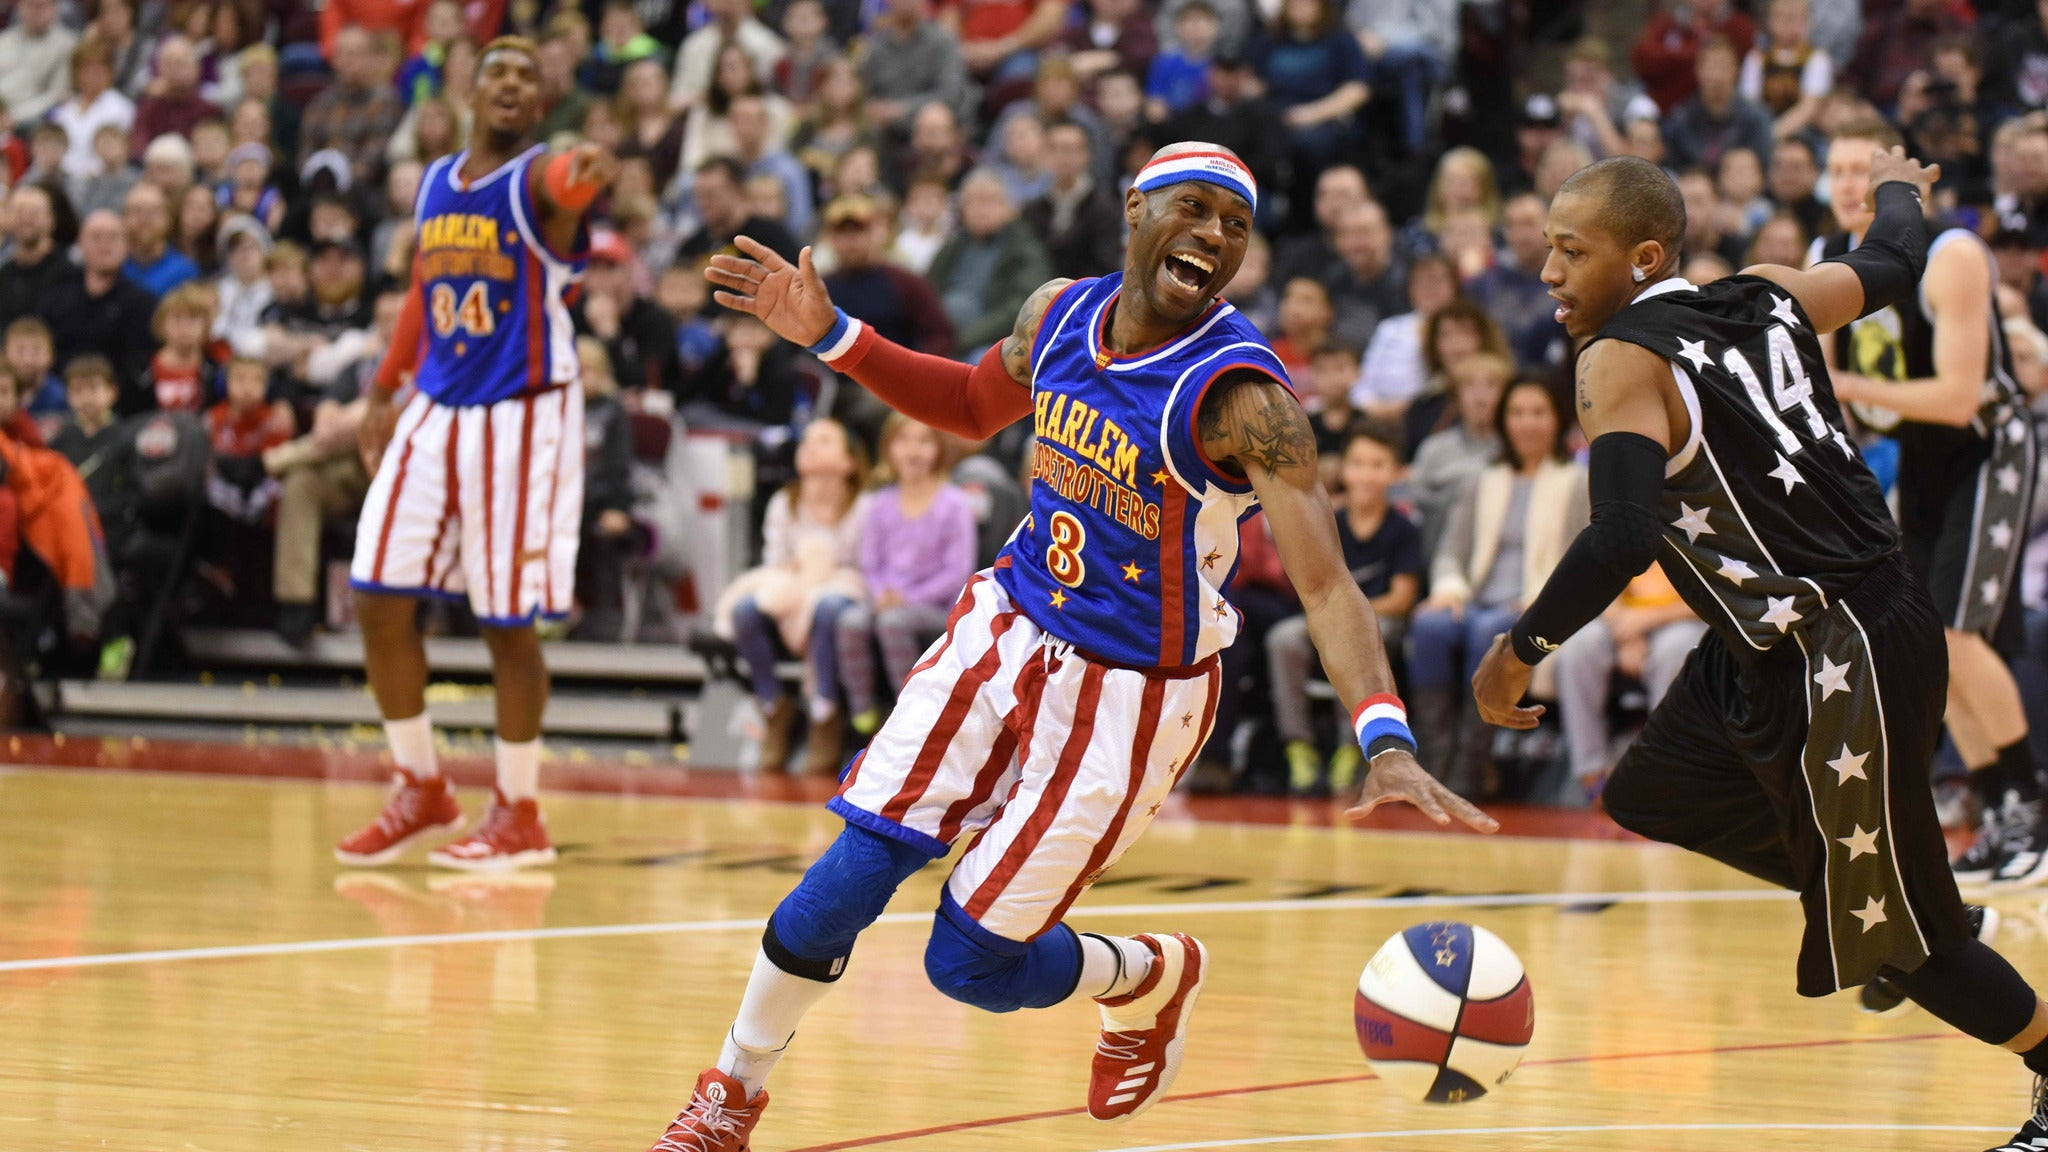 Harlem Globetrotters at Wicomico Civic Center